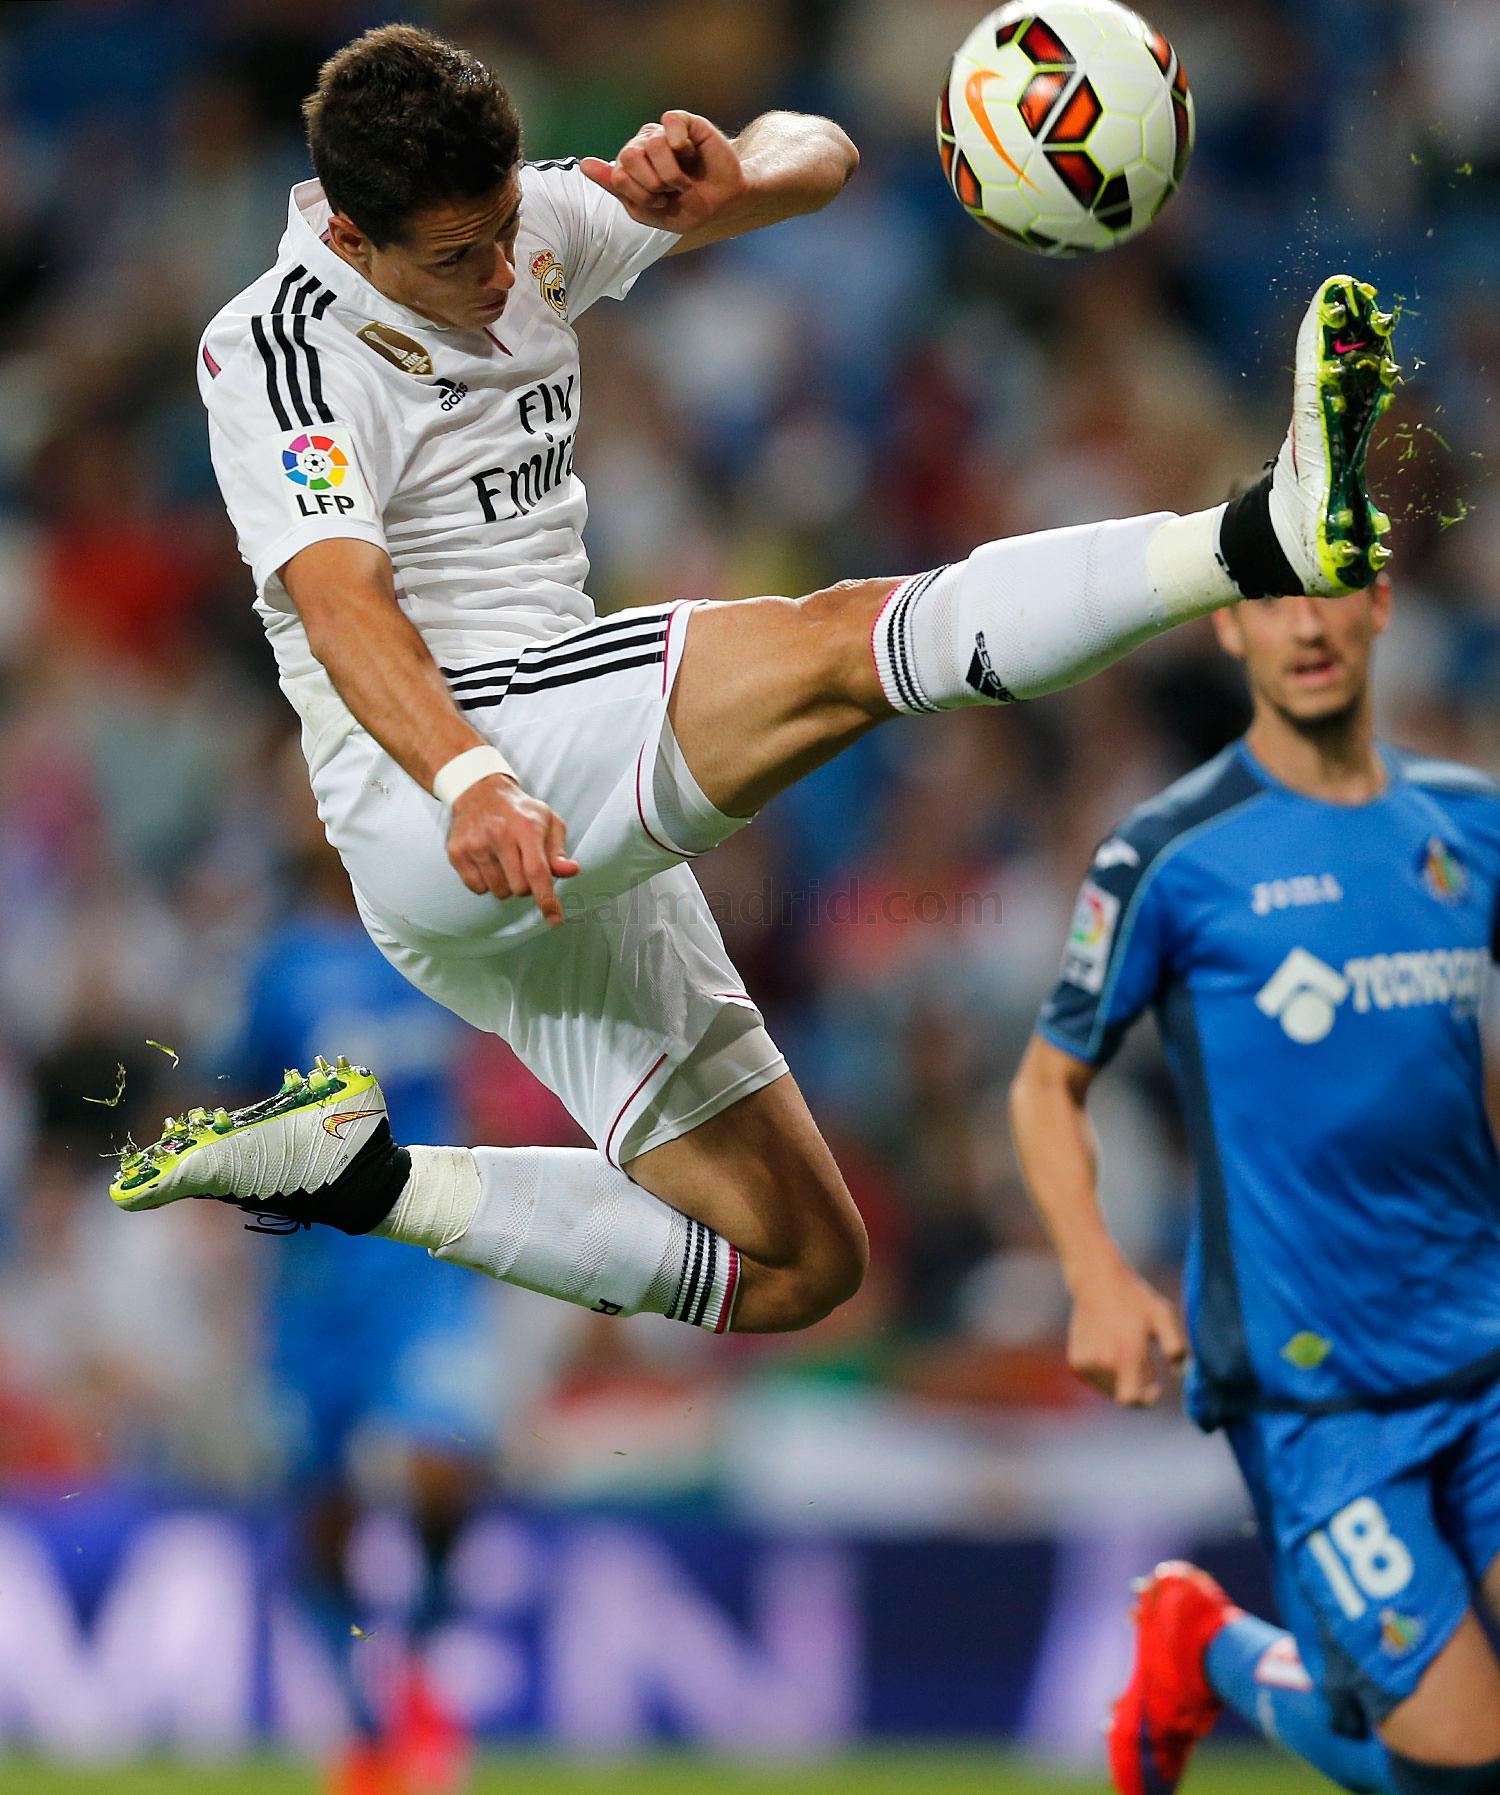 Real Madrid - Real Madrid - Getafe - 24-05-2015